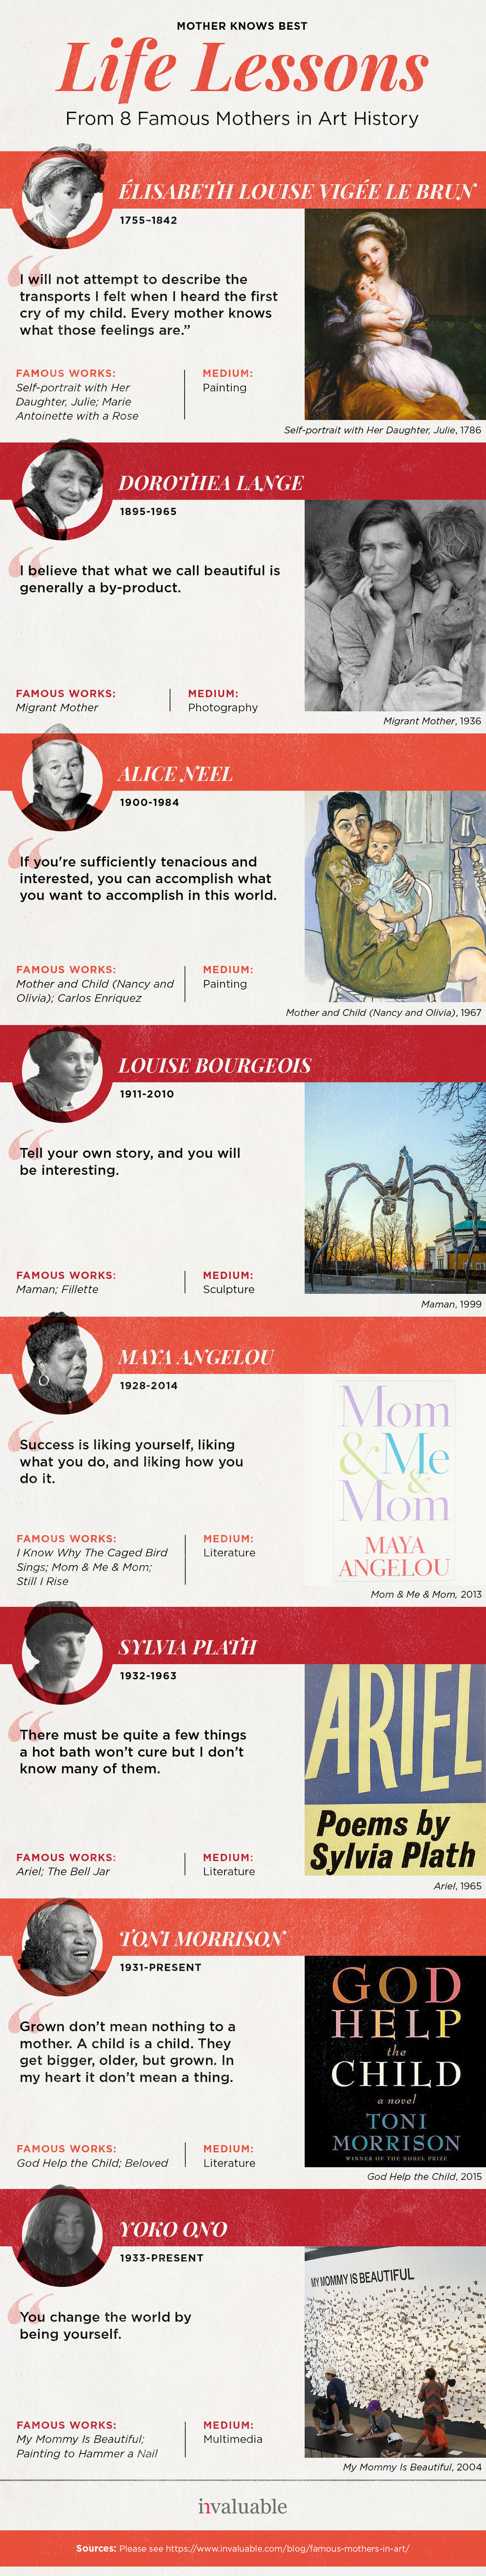 infographic-famous-moms-in-art-history.jpg